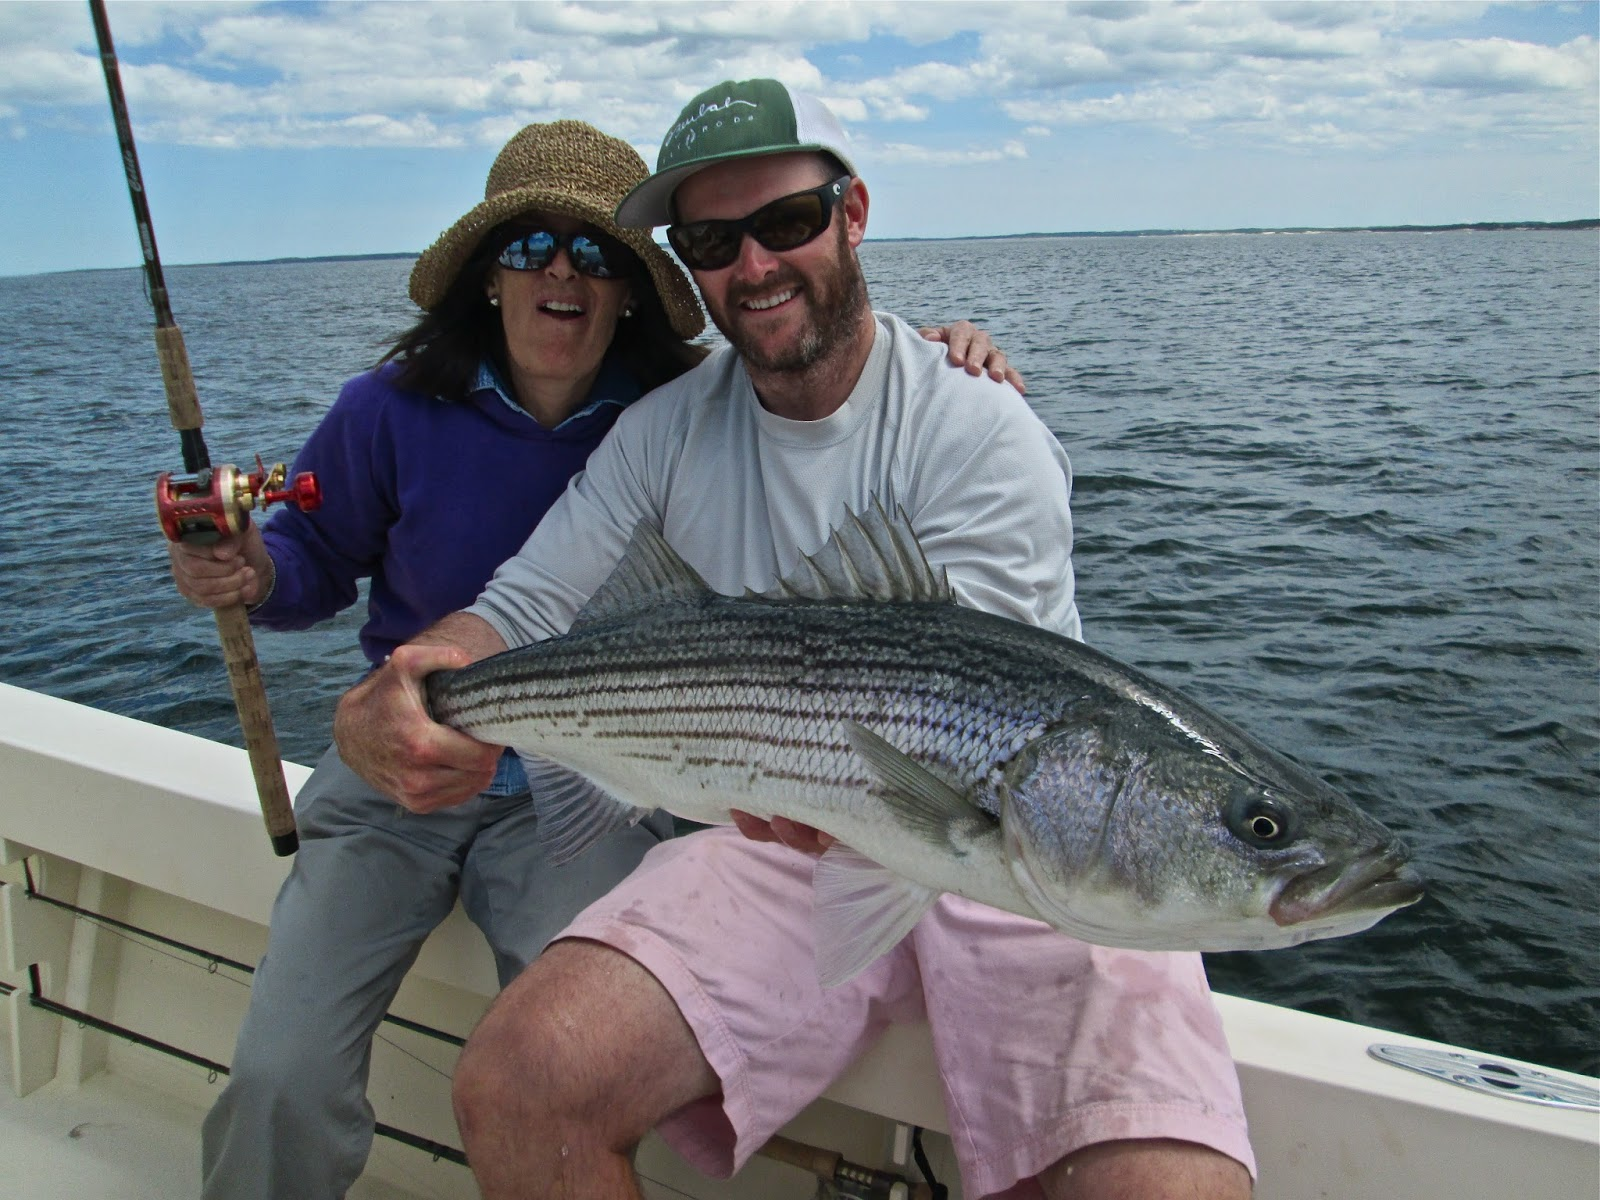 Boston fly fishing and report plum island striped bass for Fishing for striped bass